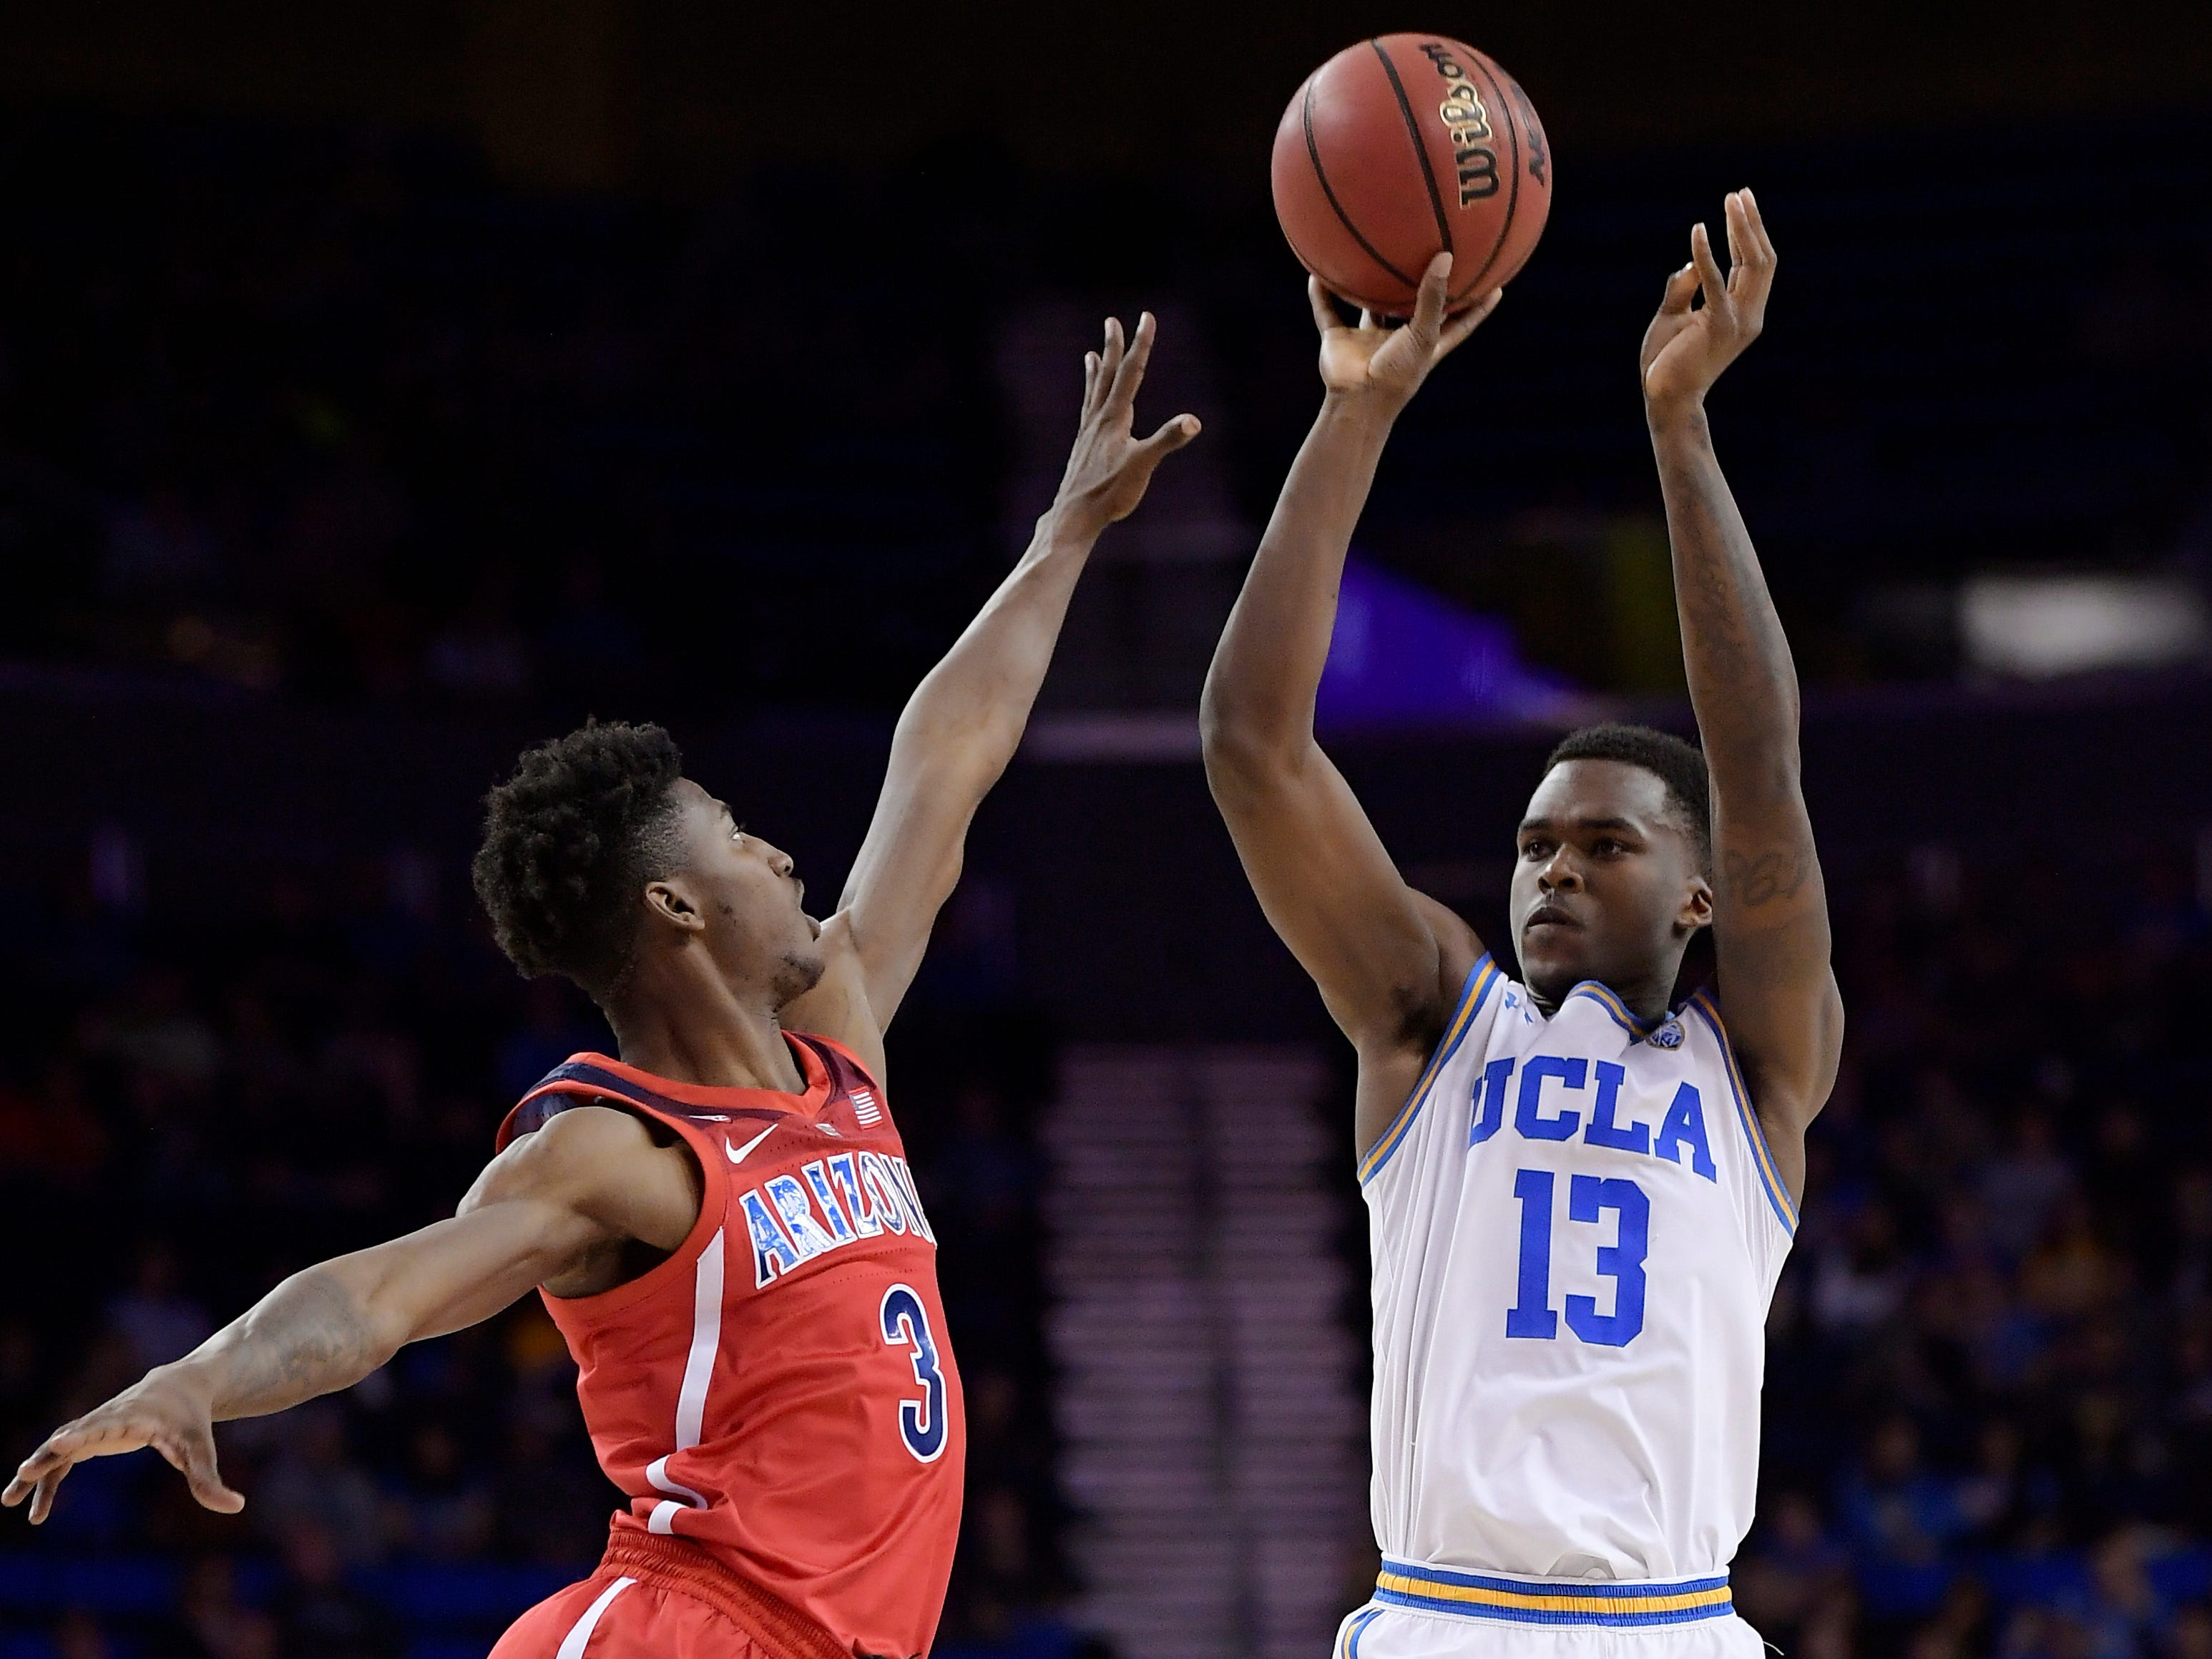 UCLA guard Kris Wilkes, right, shoots as Arizona guard Dylan Smith defends during the second half of an NCAA college basketball game Saturday, Jan. 26, 2019, in Los Angeles. UCLA won 90-69.